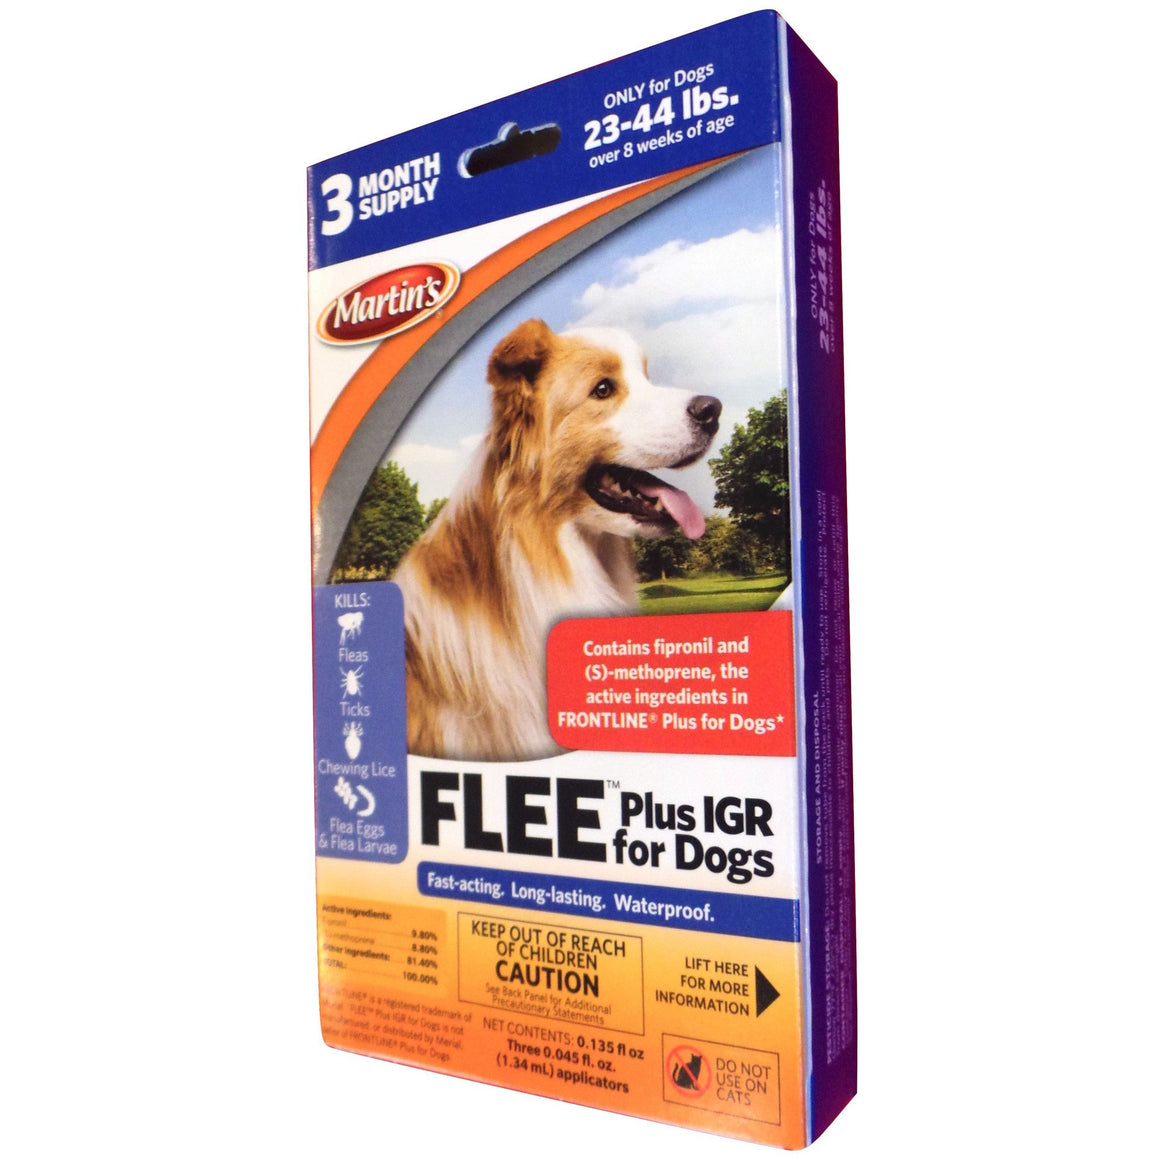 Flee Plus IGR for Dogs 23 - 44 Lbs.